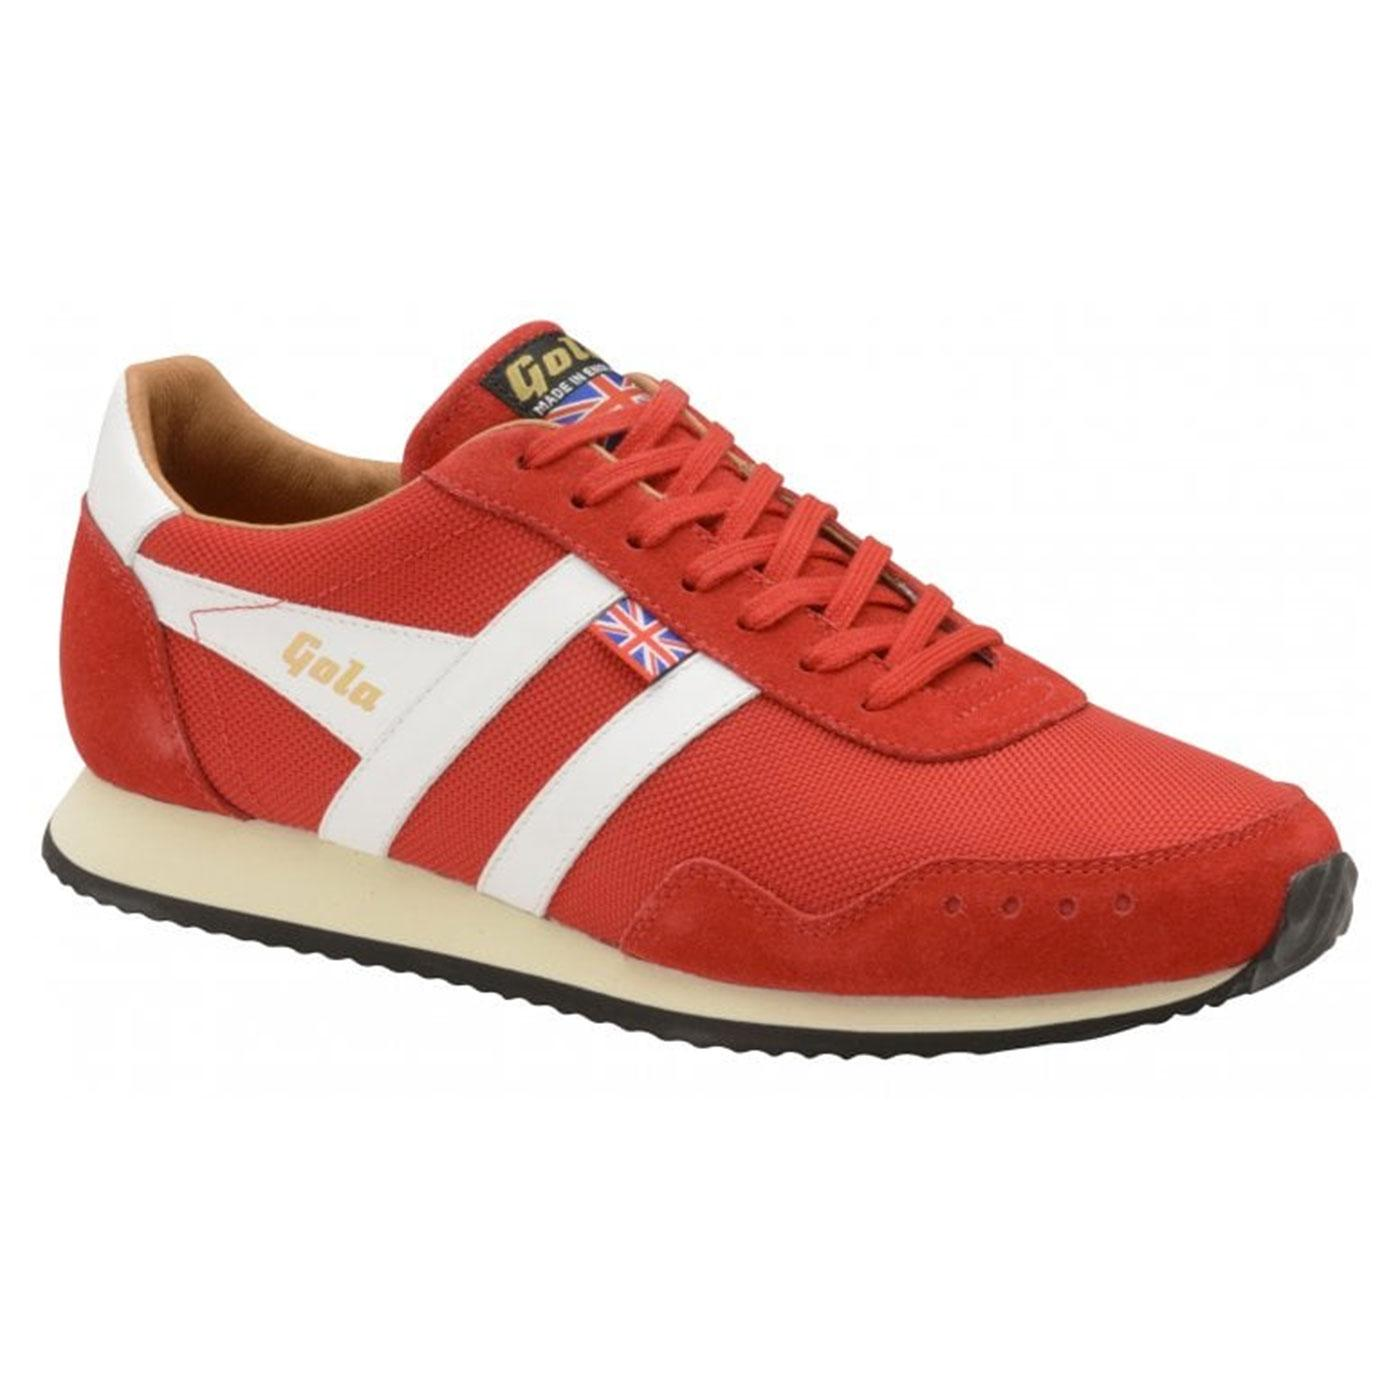 Track Mesh GOLA Made in England Retro Trainers RED